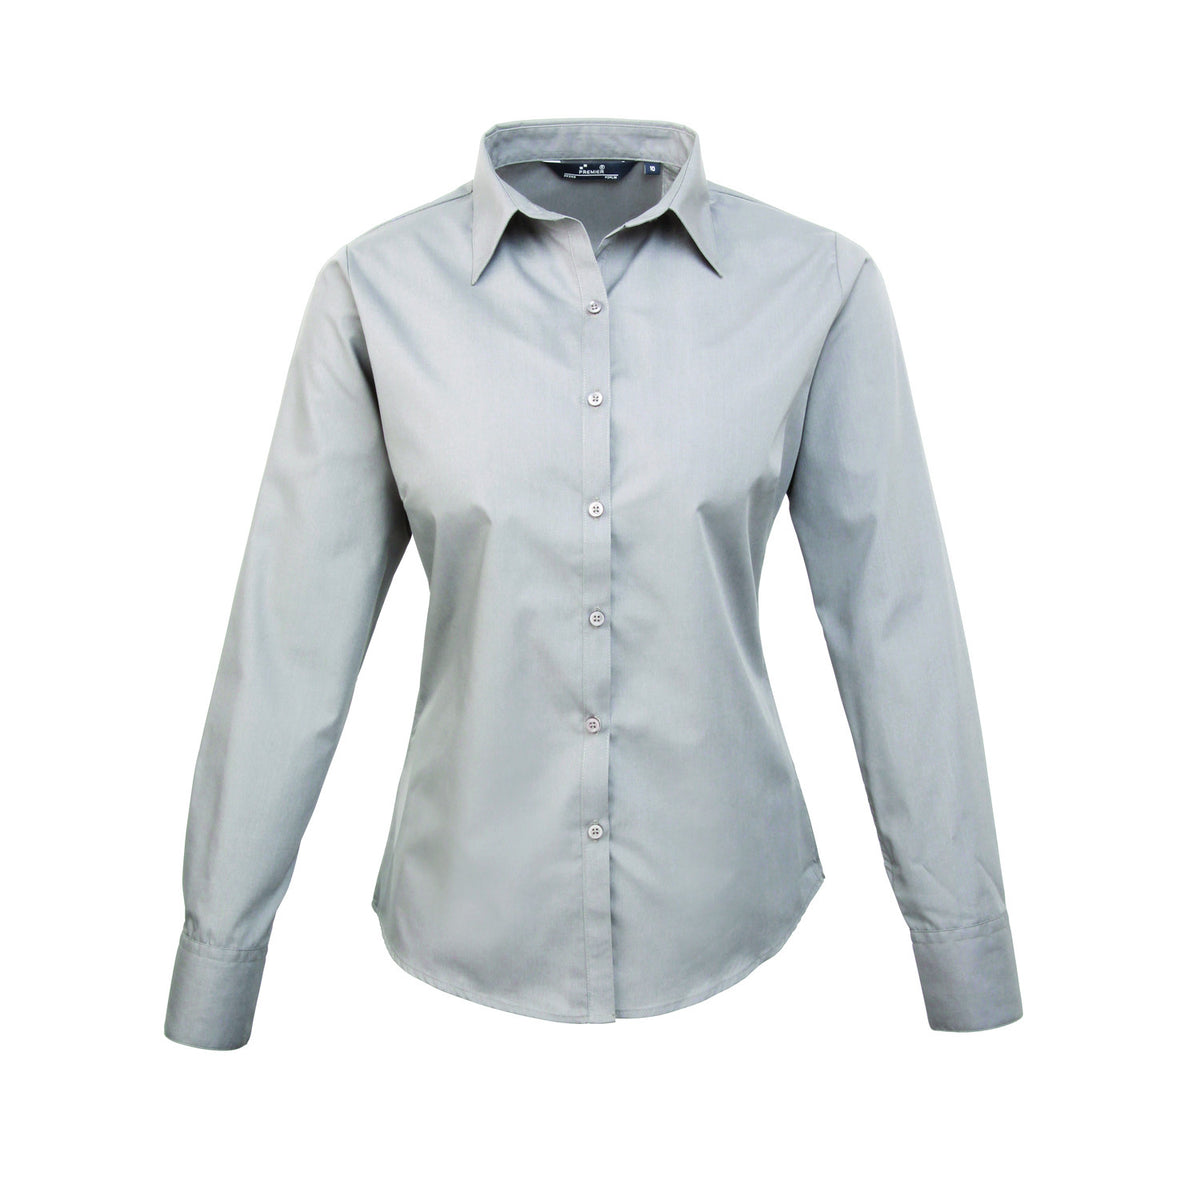 Premier Poplin Blouse (Silver, Brown, Drk Grey, Steel, Black)